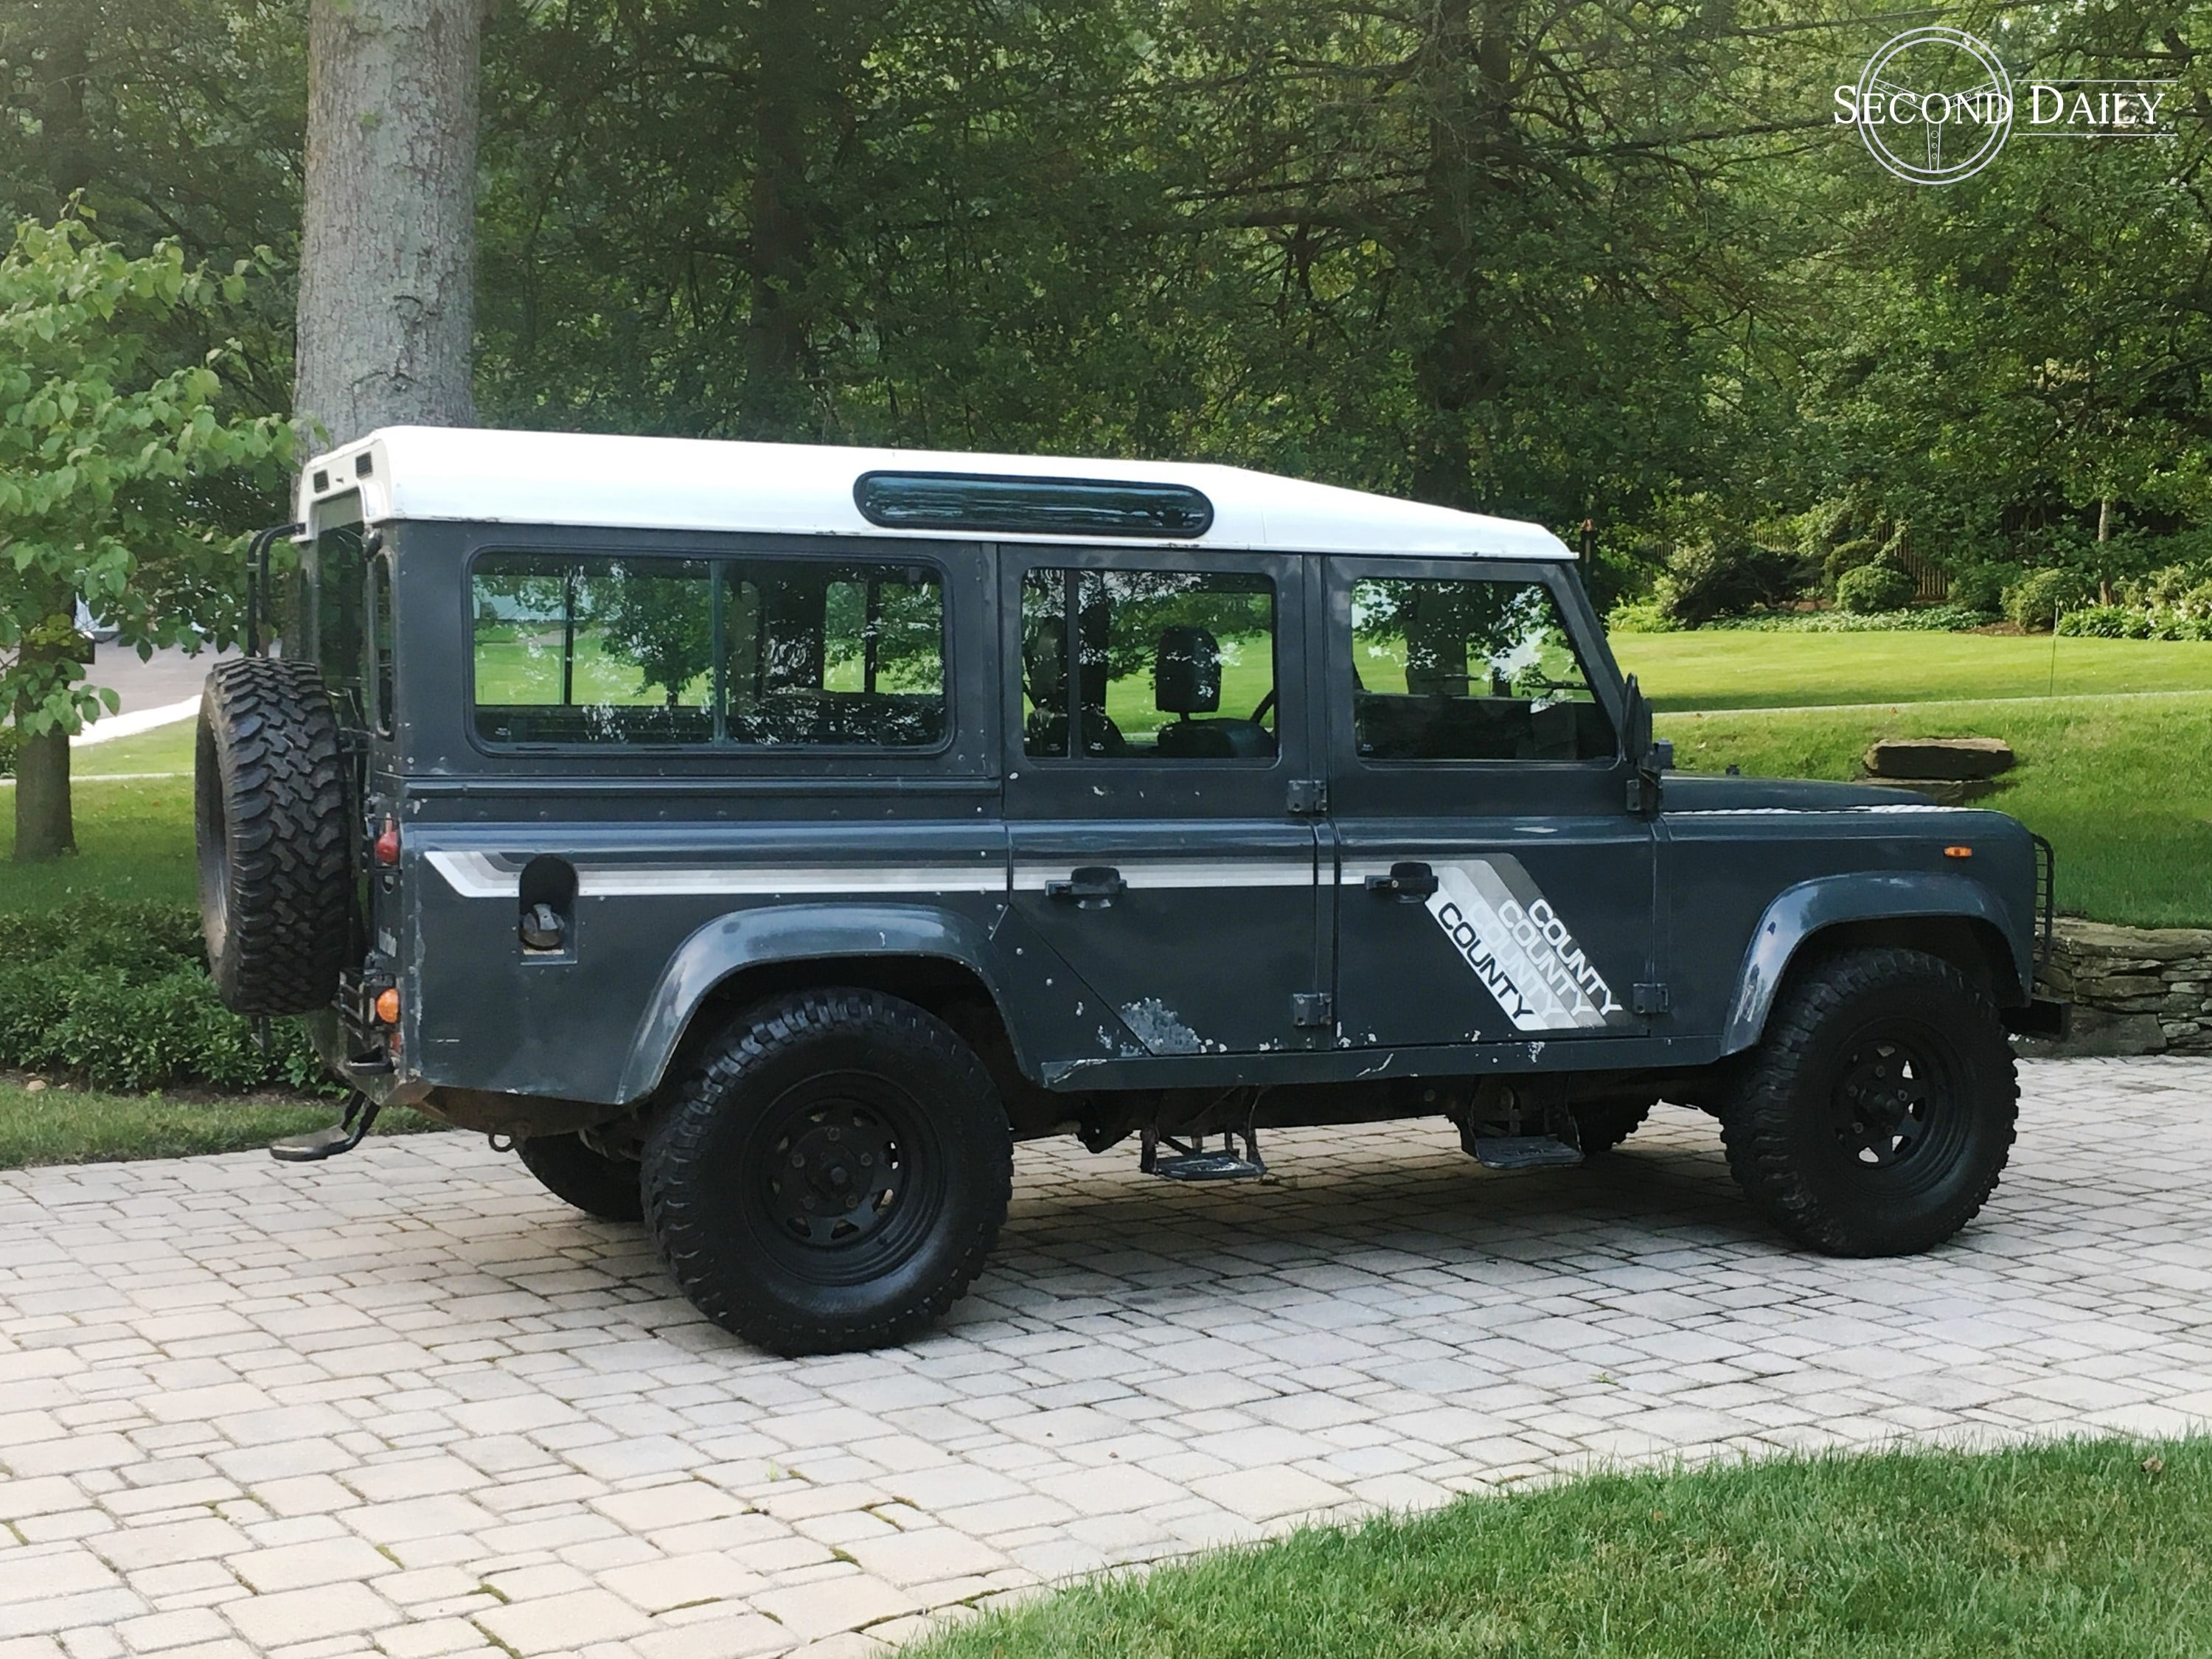 Sold 1988 Land Rover 110 Defender Lhd Second Daily